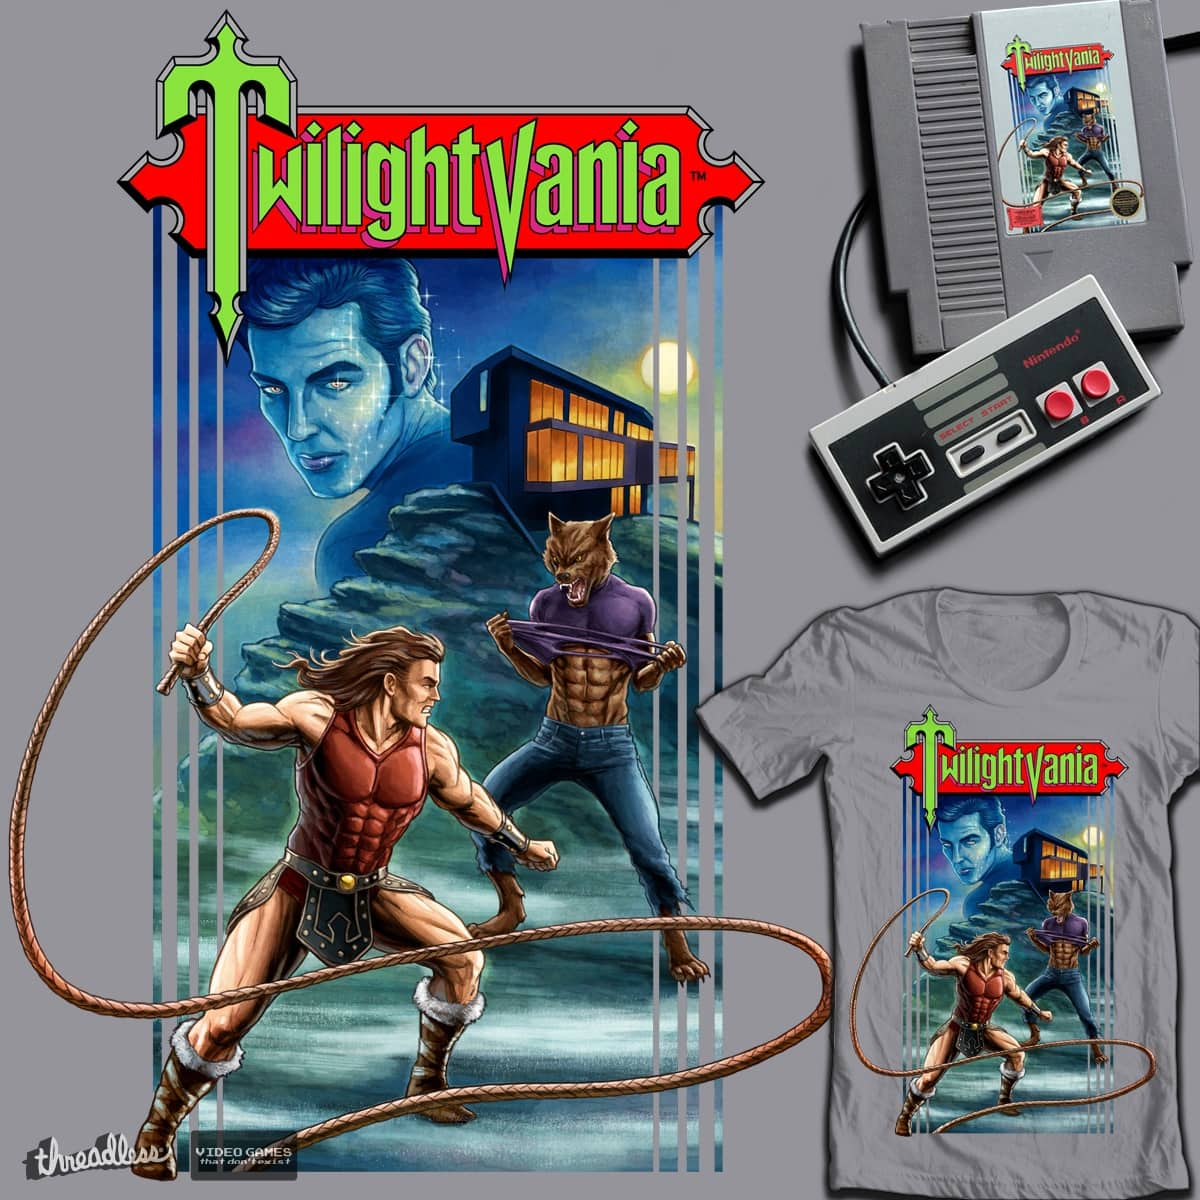 Twilightvania by Moutchy on Threadless